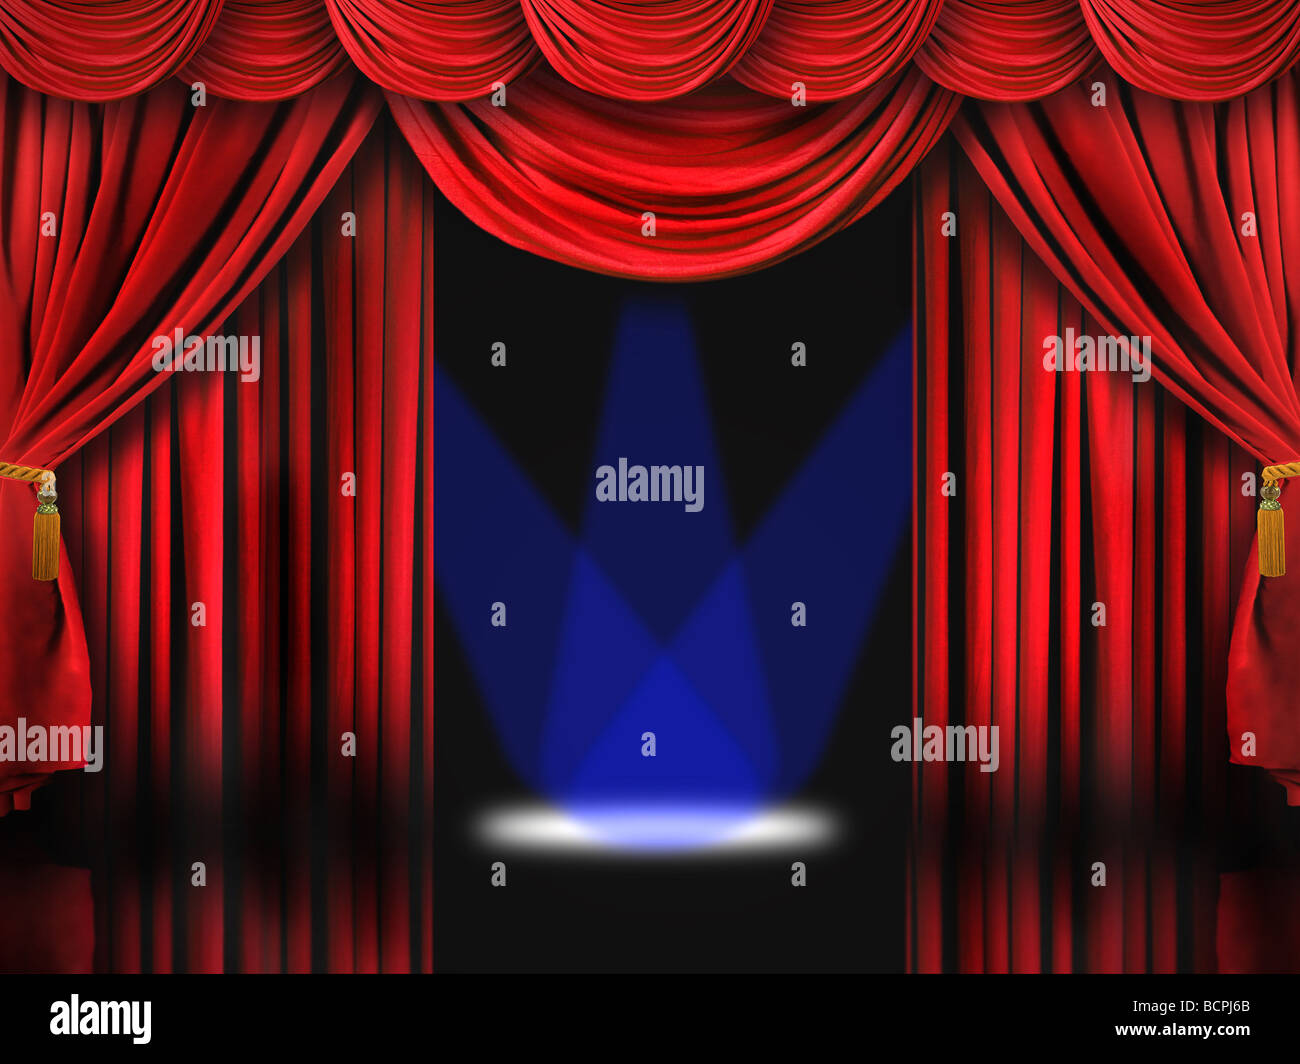 Dramatic Red Theater Stage With Blue Spot Lights - Stock Image